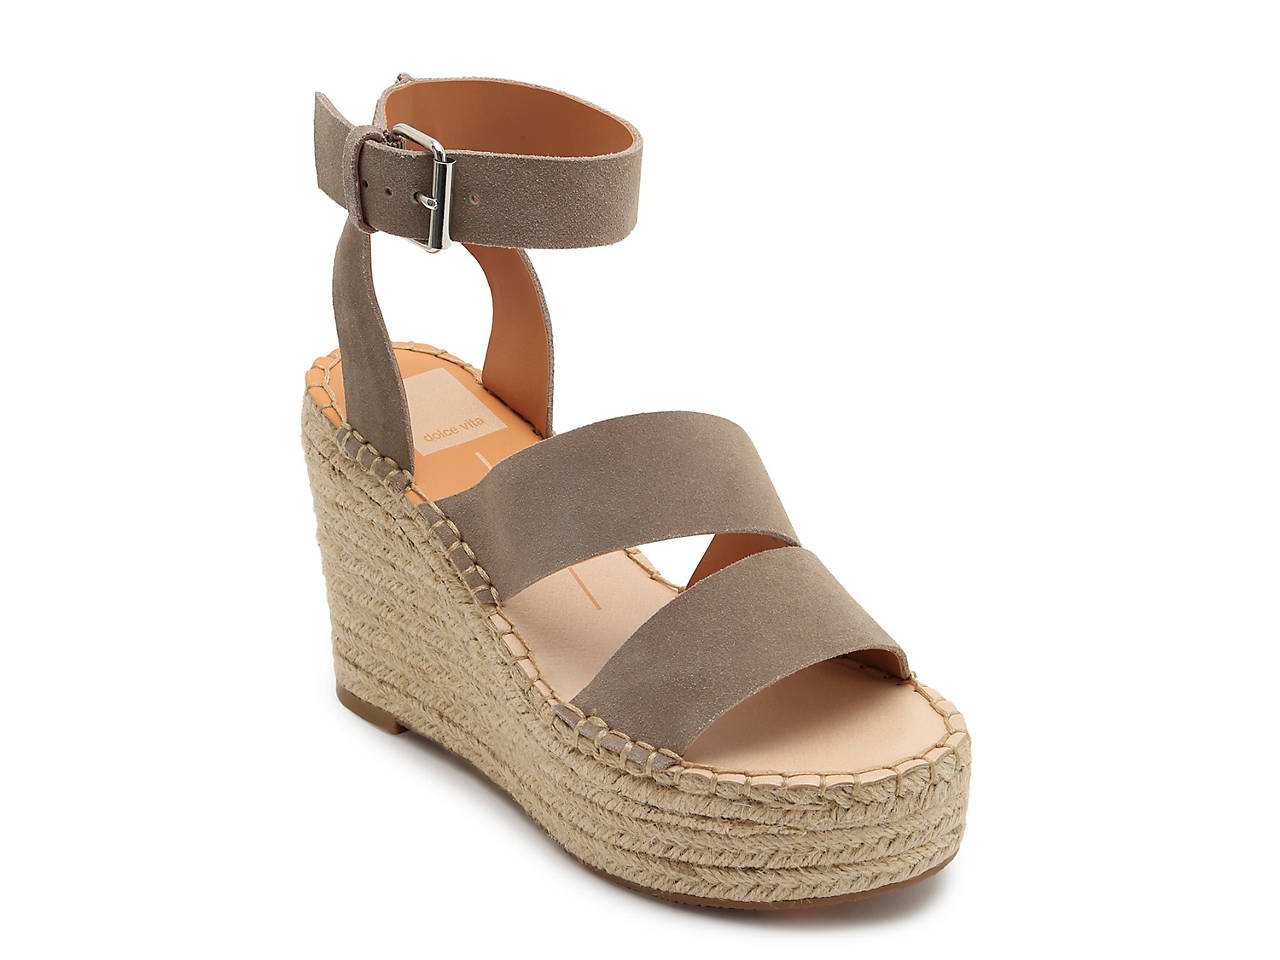 87550a54935 Dolce Vita Shayla Espadrille Wedge Sandal Women s Shoes